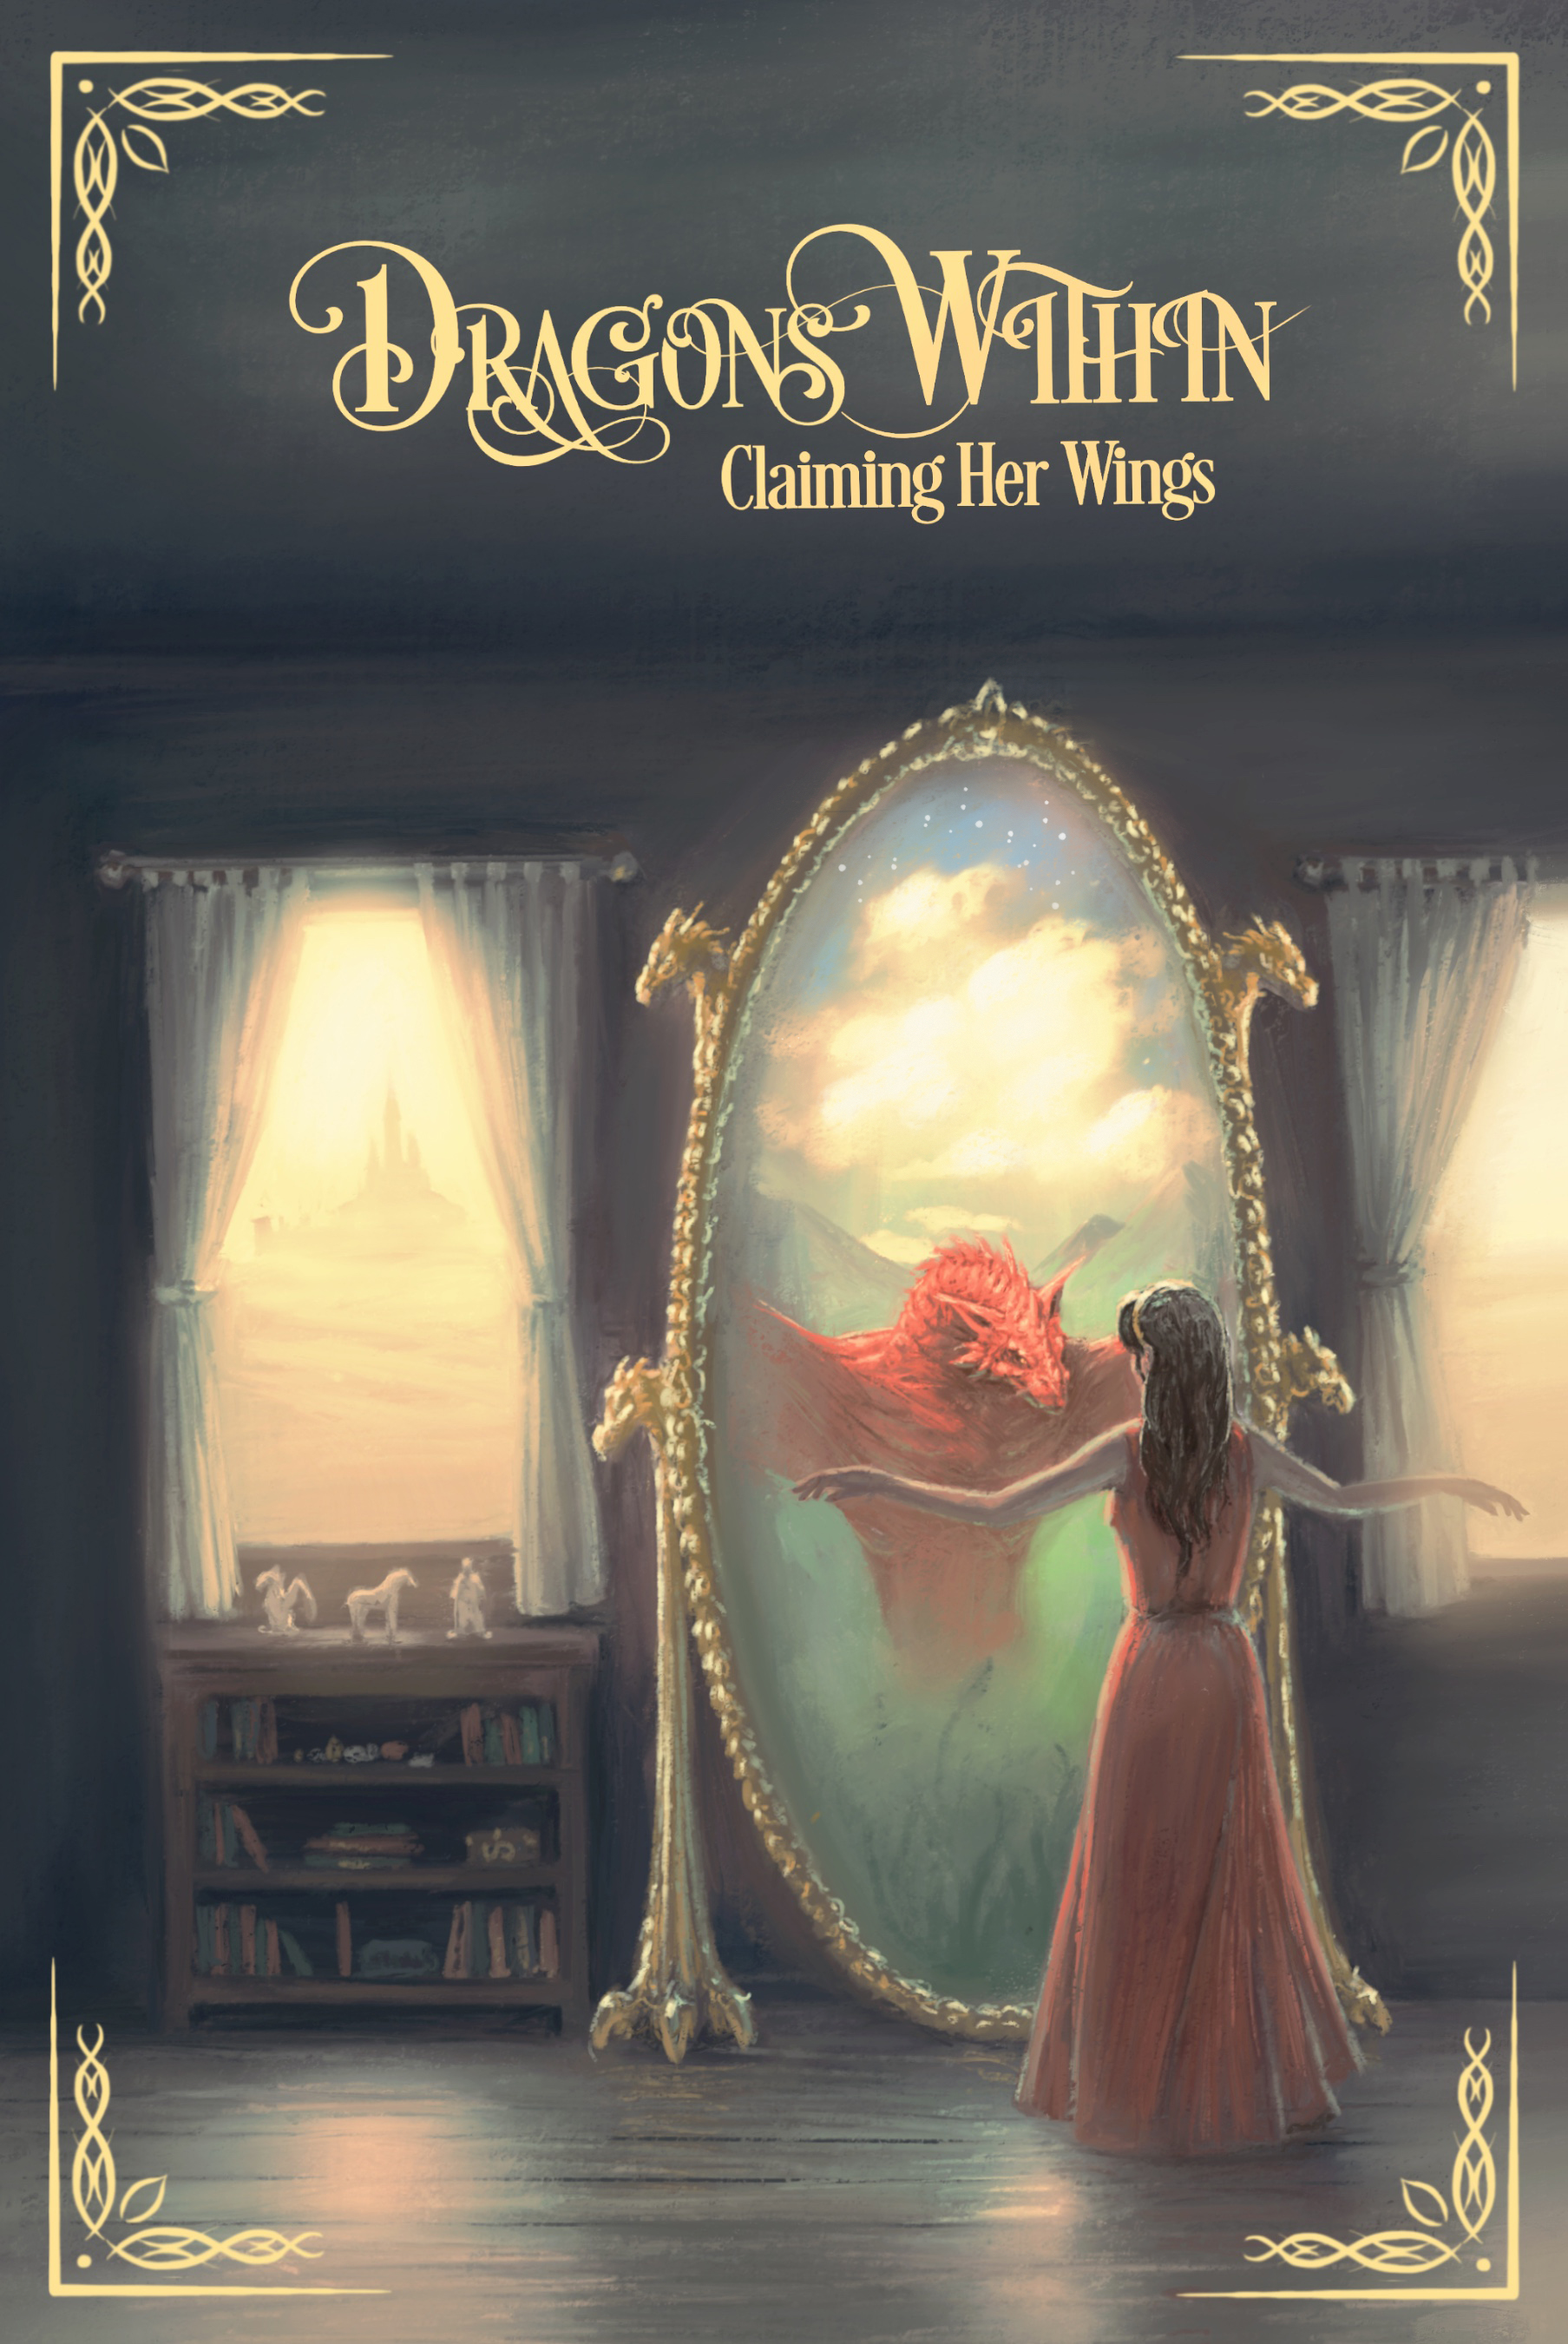 Dragons Within: Claiming Her Wings